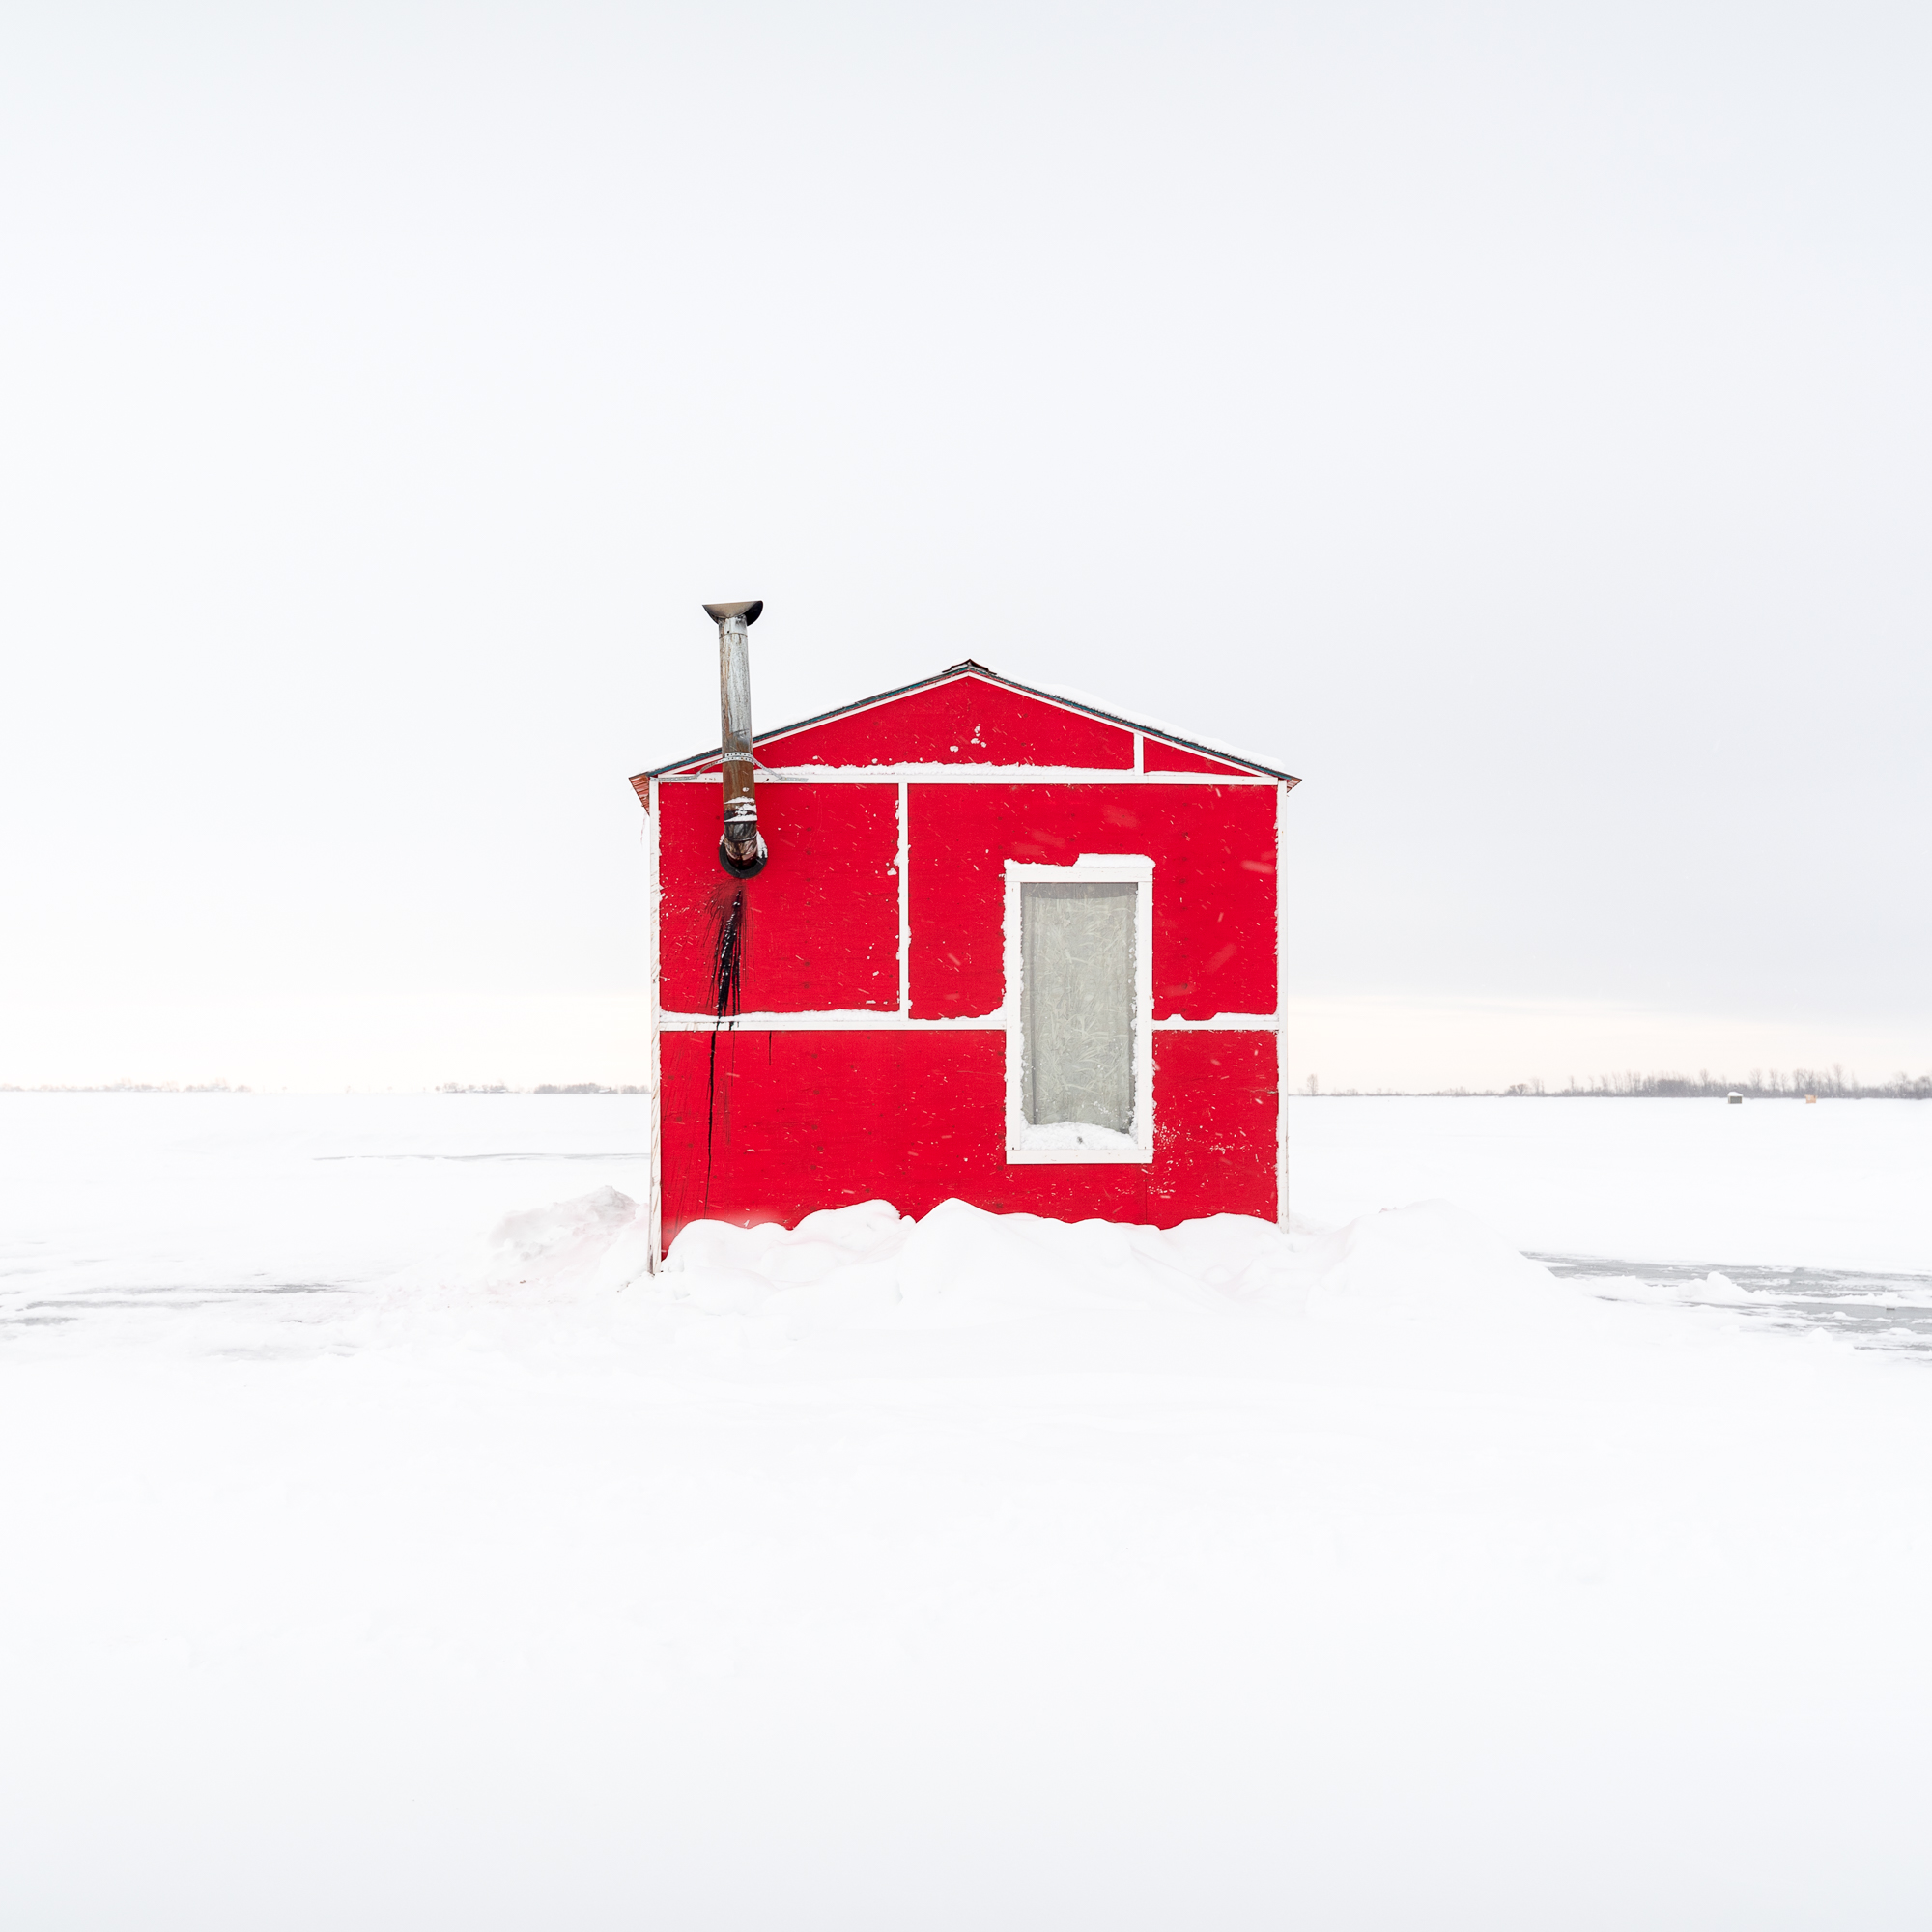 Lake Winnipeg - An invitation from an old friend to visit Manitoba turns into a great trip to photograph ice fishing huts on Lake Winnipeg.